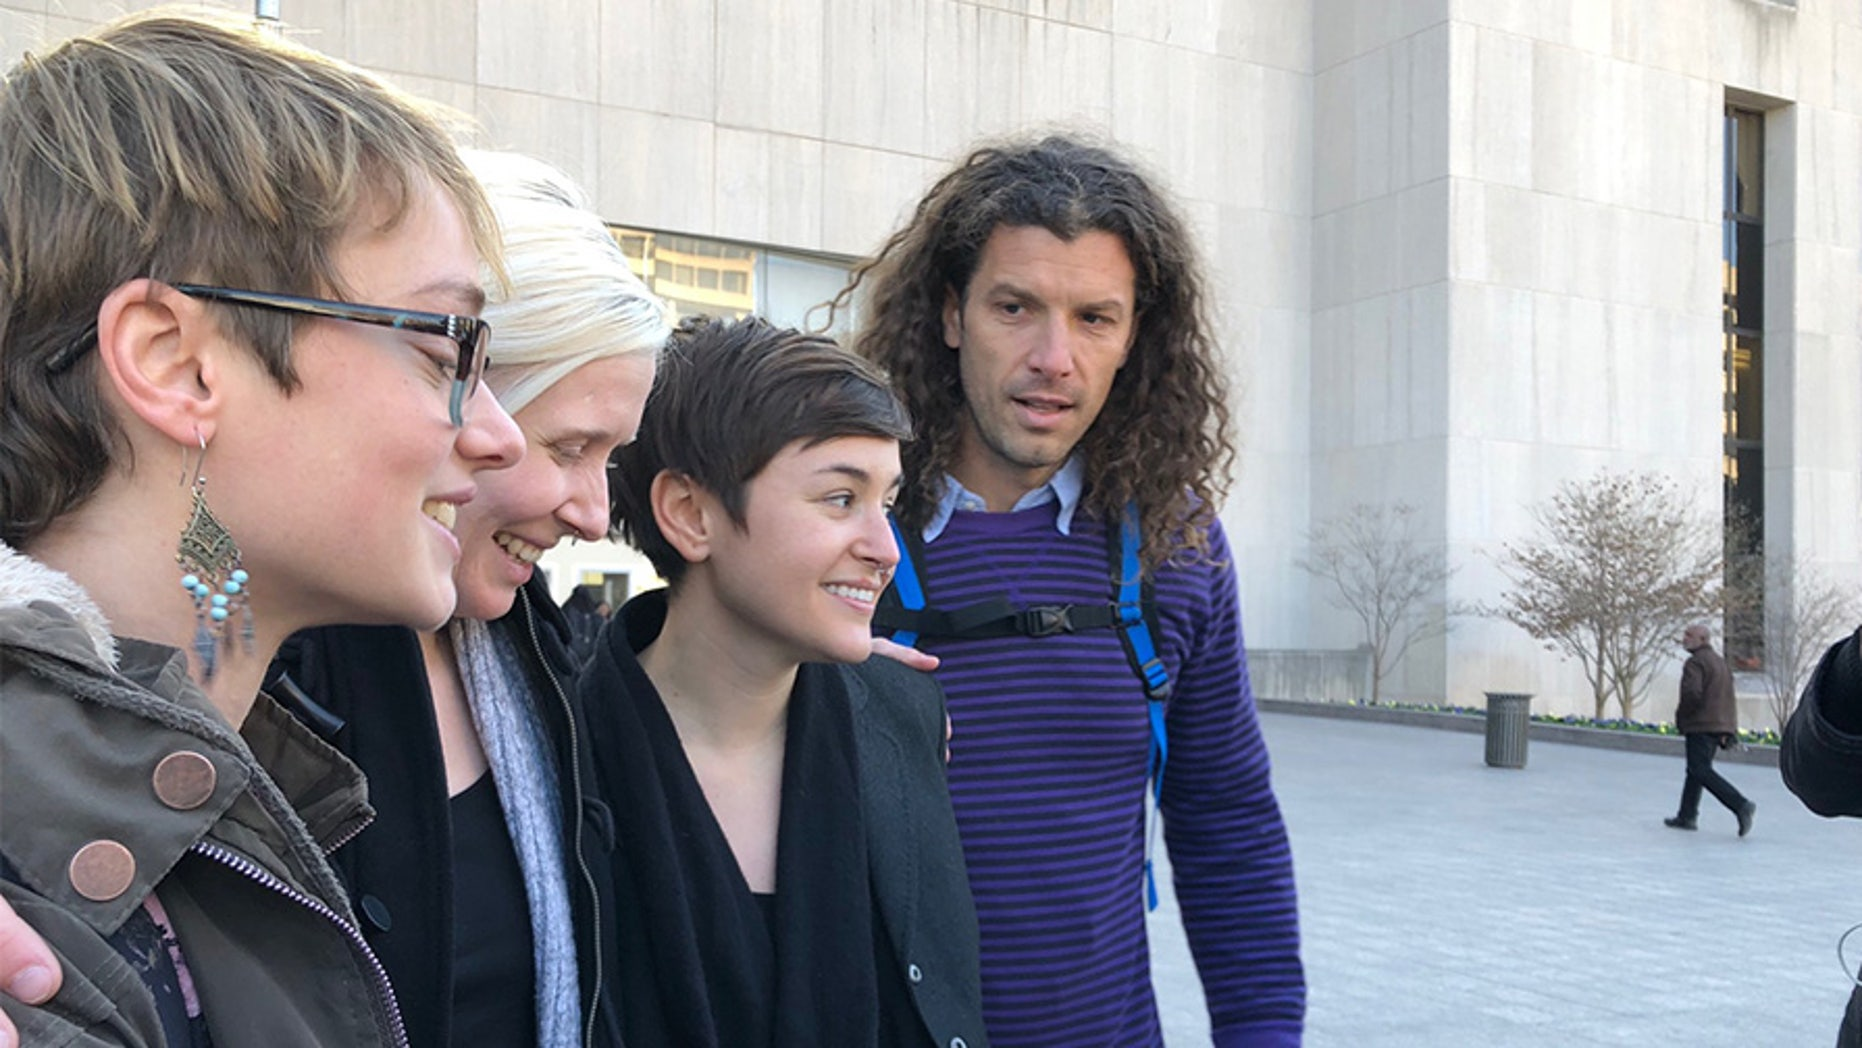 Four of the six acquitted Inauguration Day protesters, including Brittne Lawson (second to left) and Alexei Wood (far right), stood outside the courthouse following the verdict announcement.